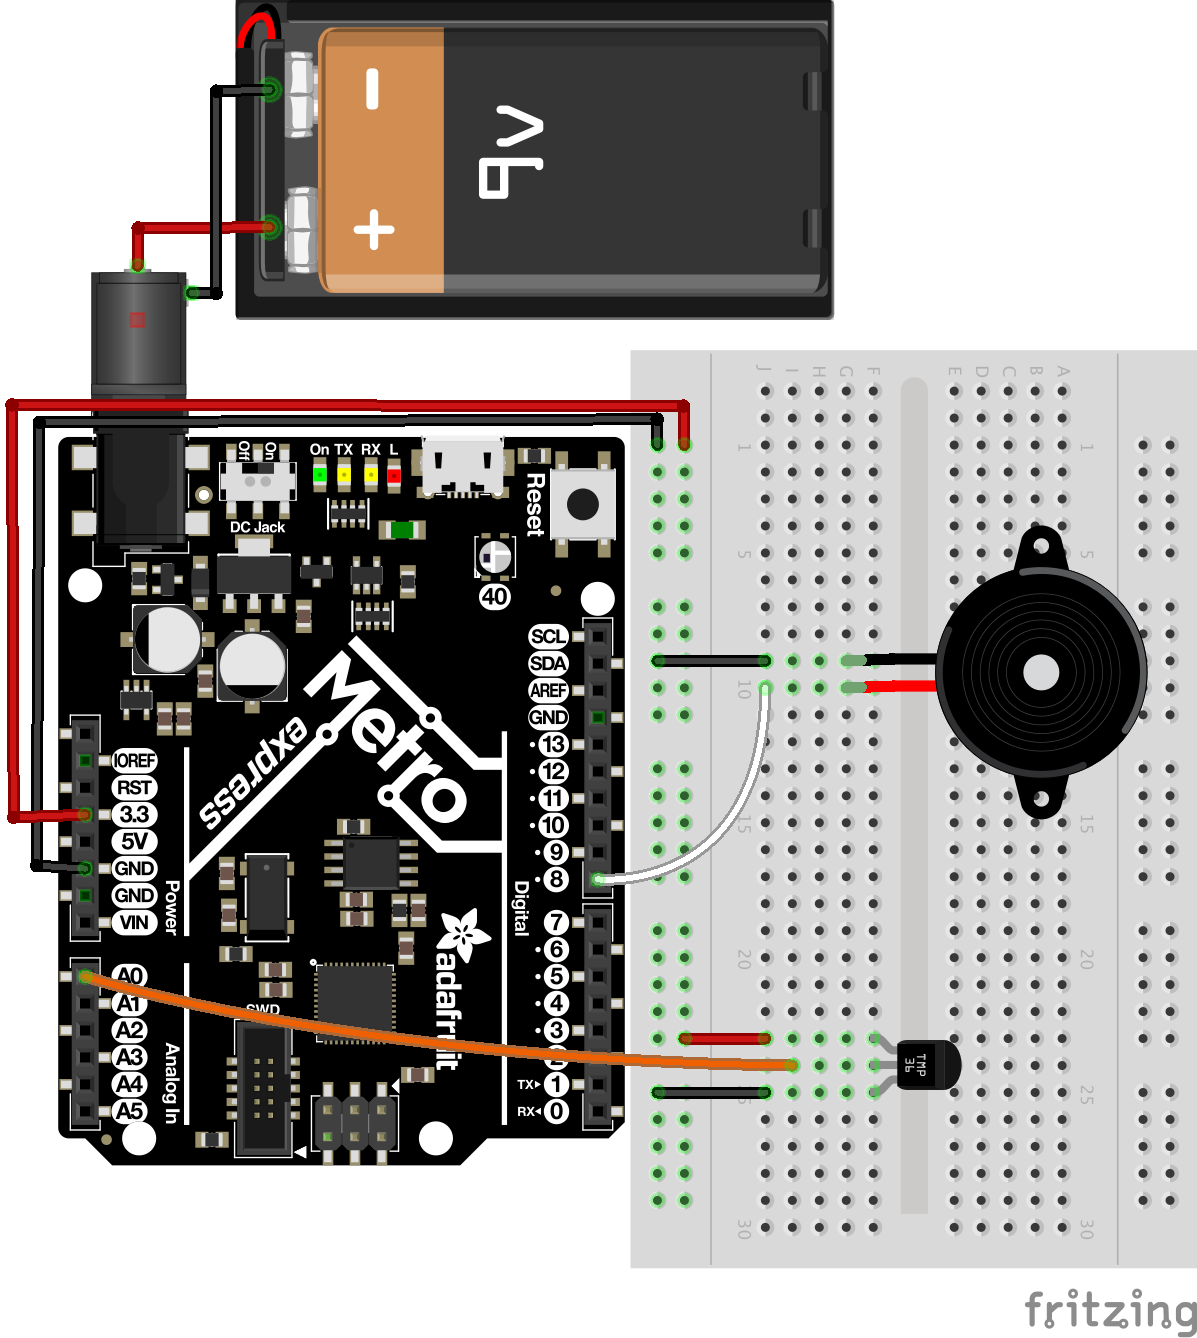 adafruit_products_circ10.5_bb.png